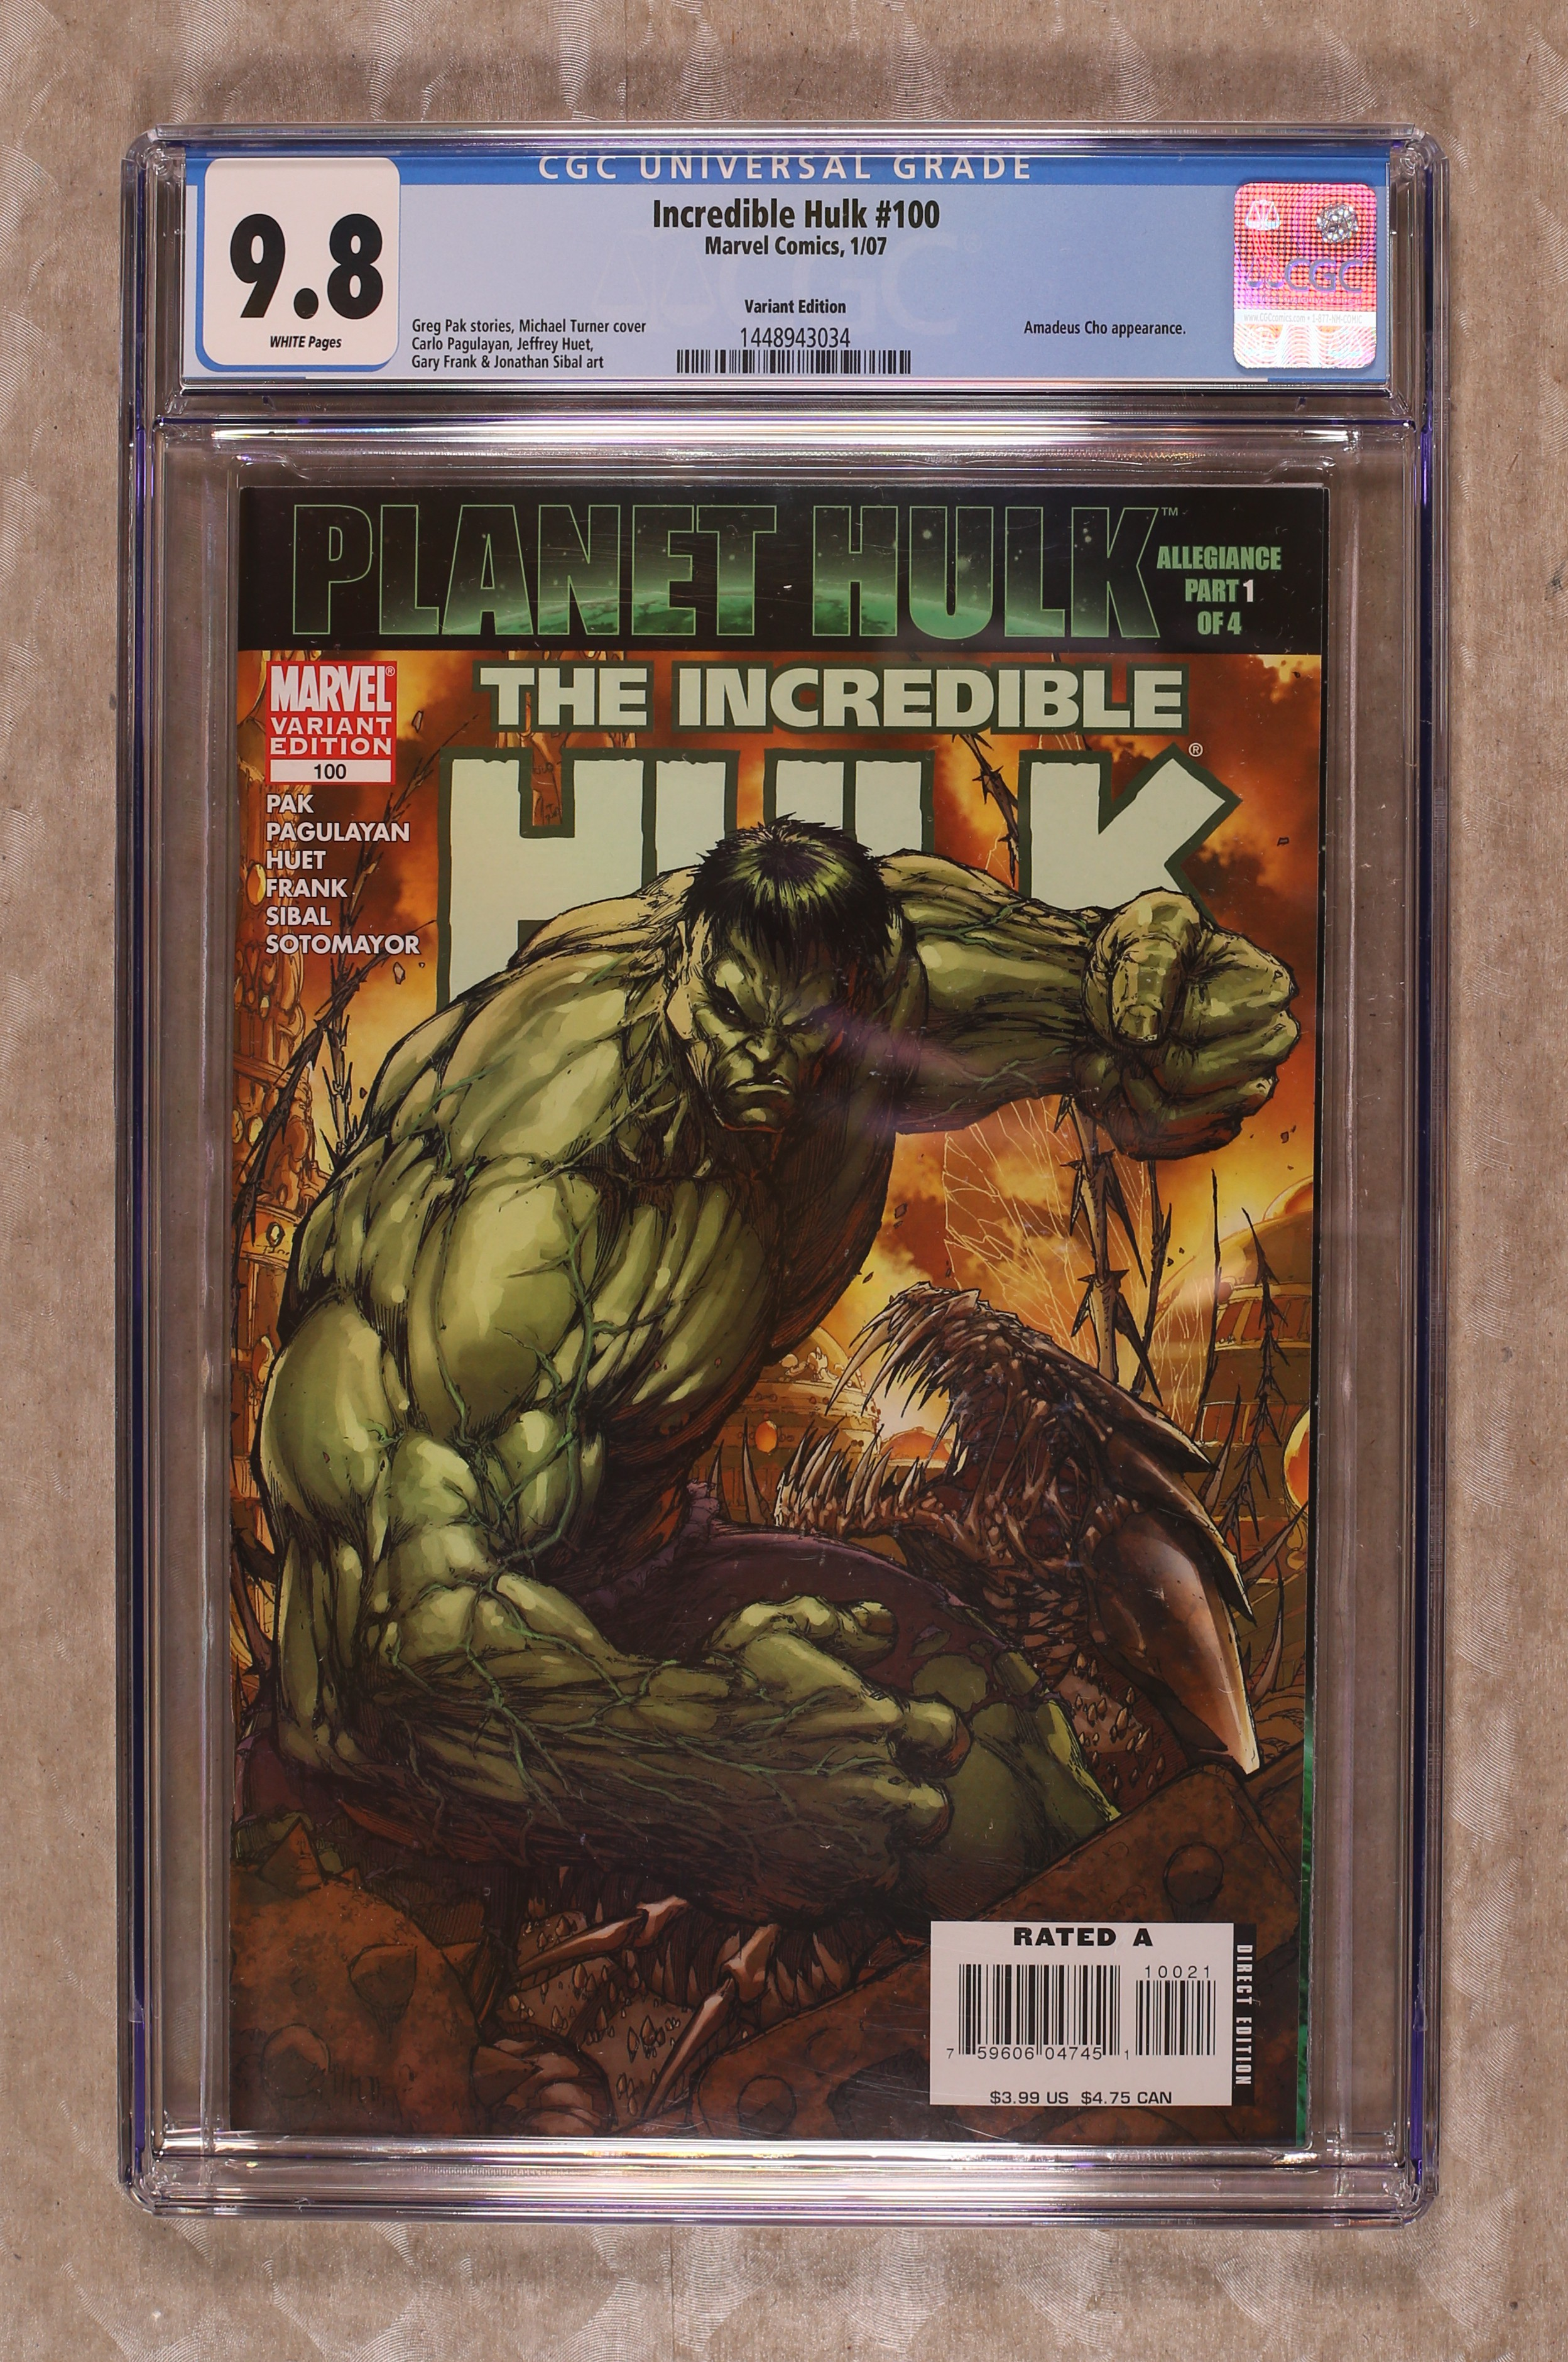 Incredible Hulk comic books 2007, graded by CGC. Item #46997652. Actual  item pictured; not a generic image.